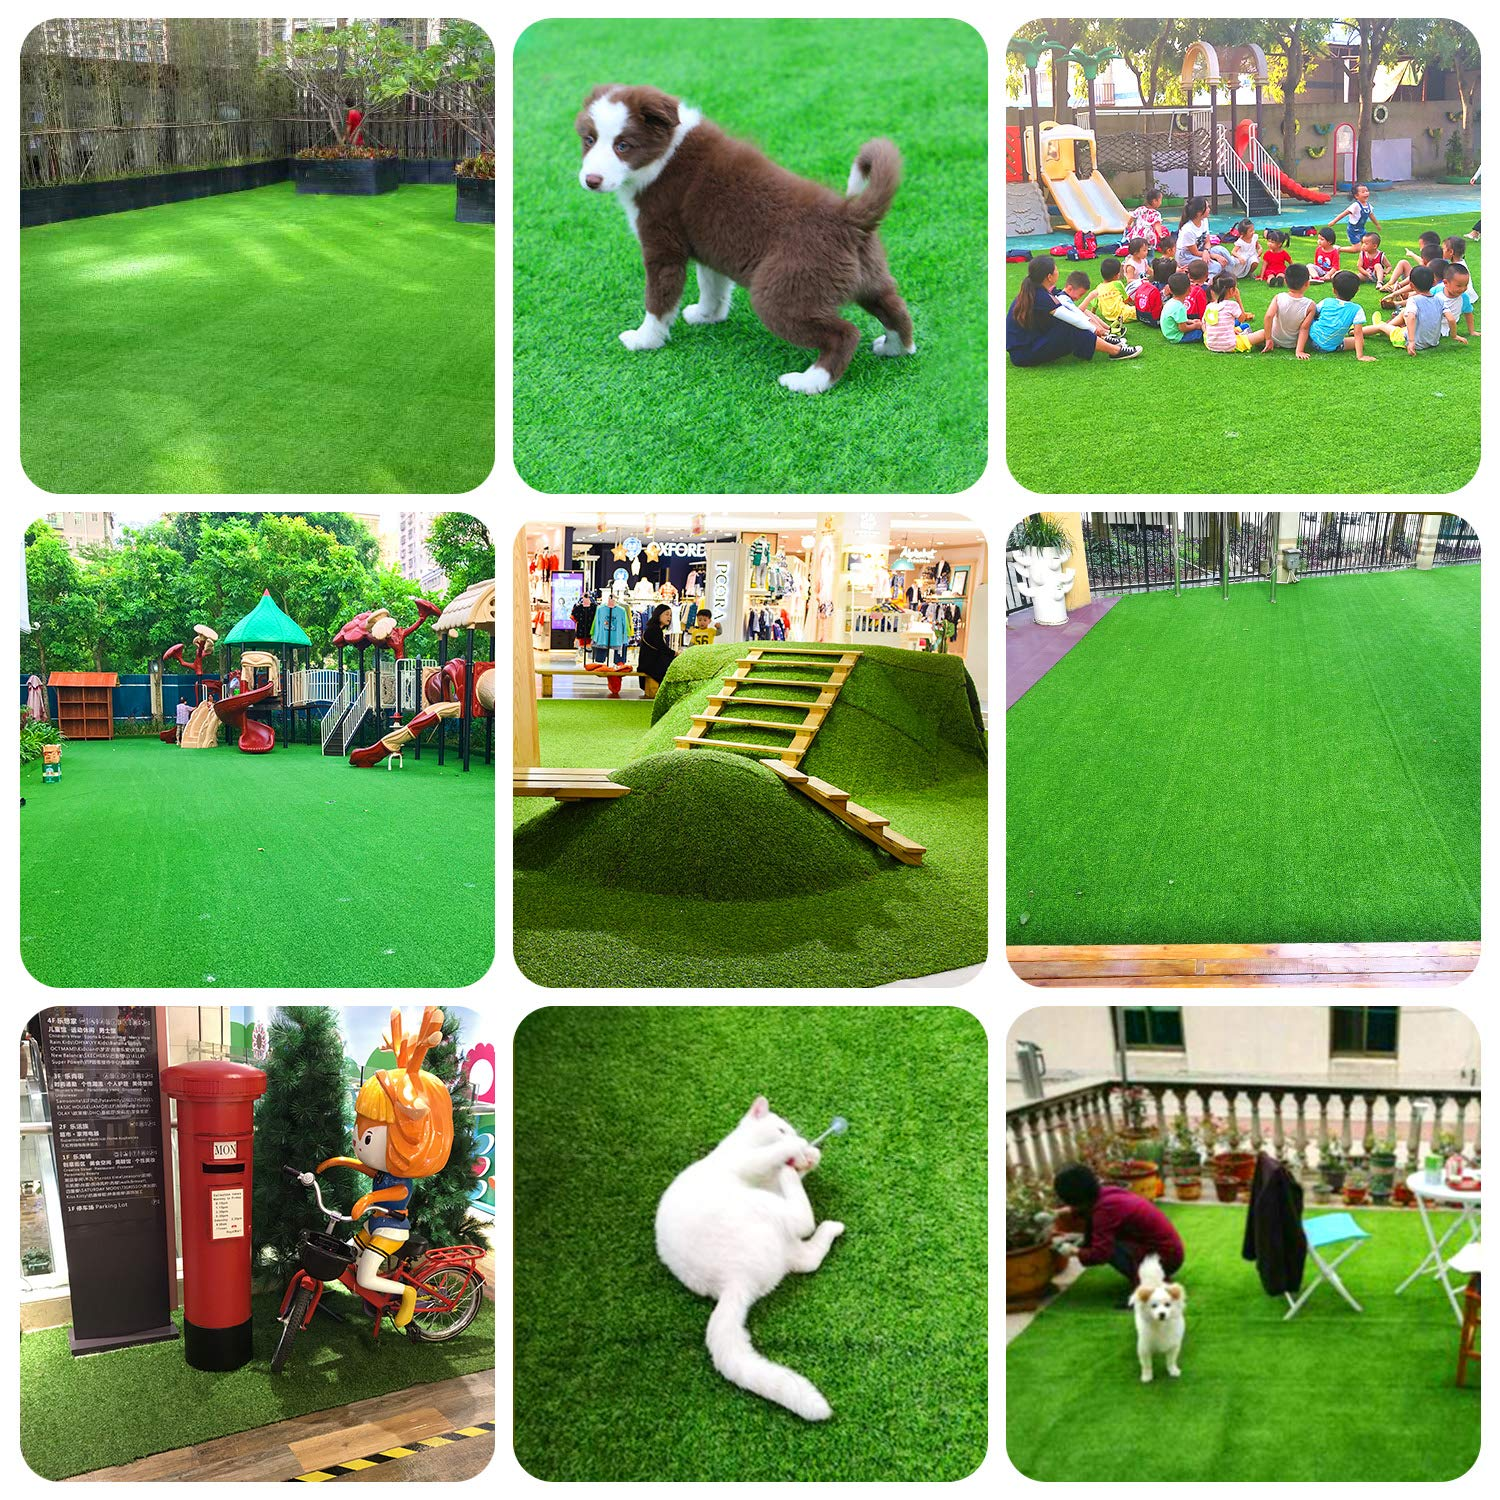 RoundLove Artificial Turf Lawn Fake Grass Indoor Outdoor Landscape Pet Dog Area (40X80 in) by RoundLove (Image #10)